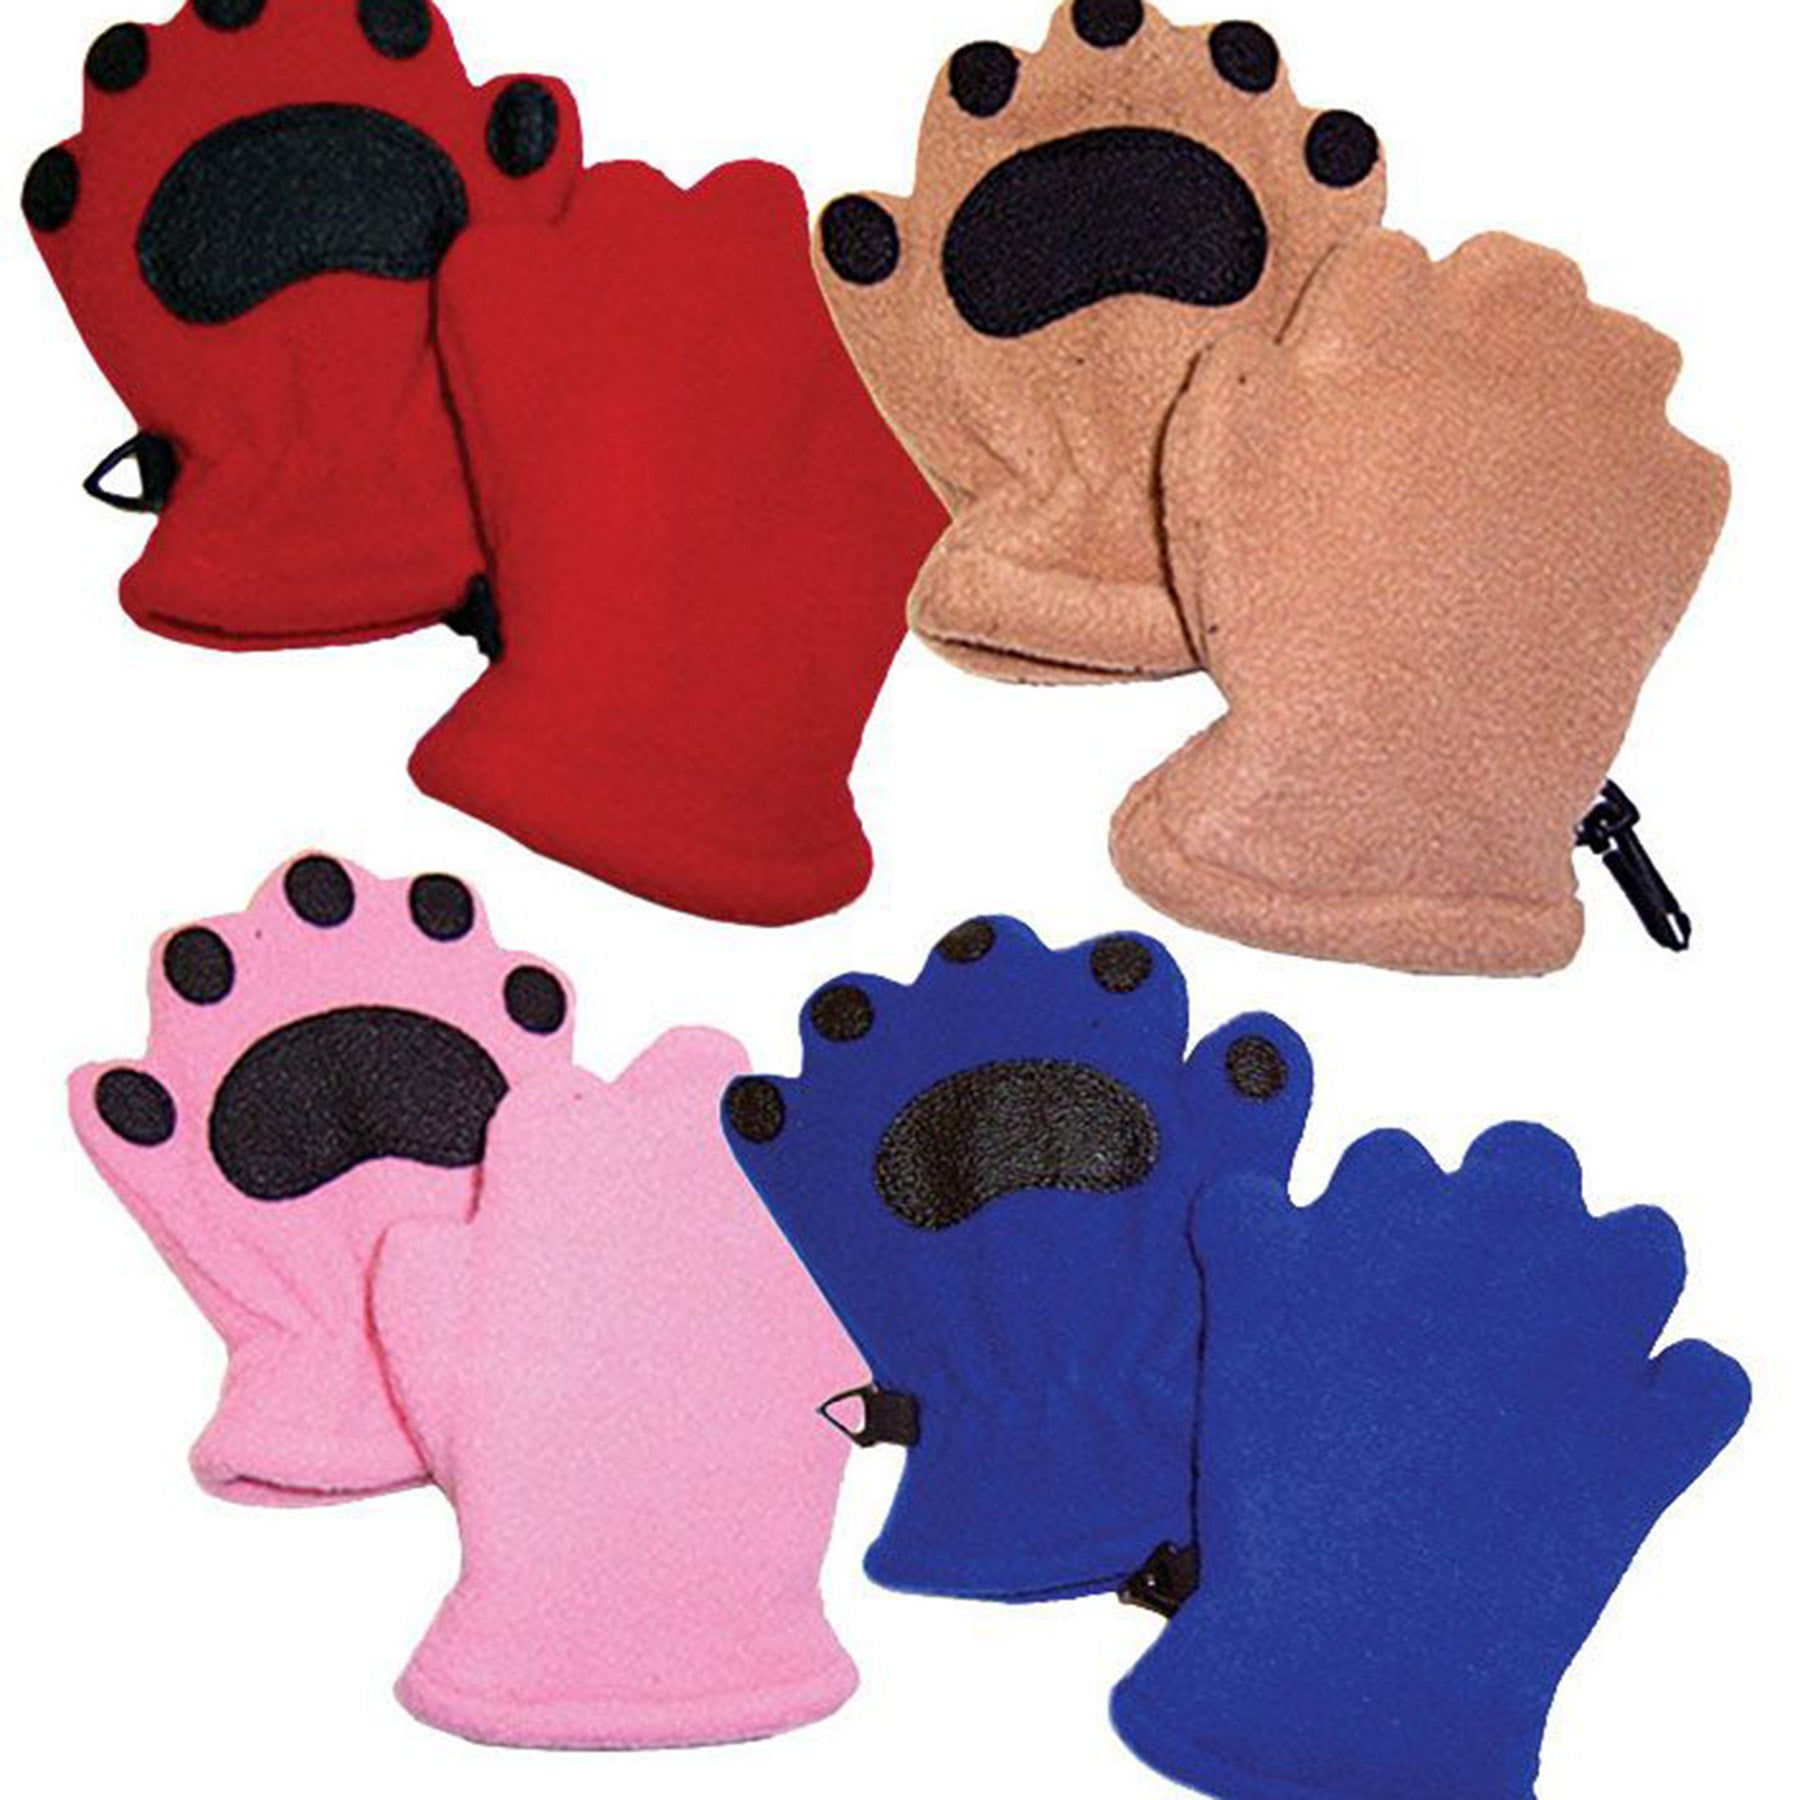 shown are the four colors and styles of the bearhands mittens - red, camel, blue, and pink